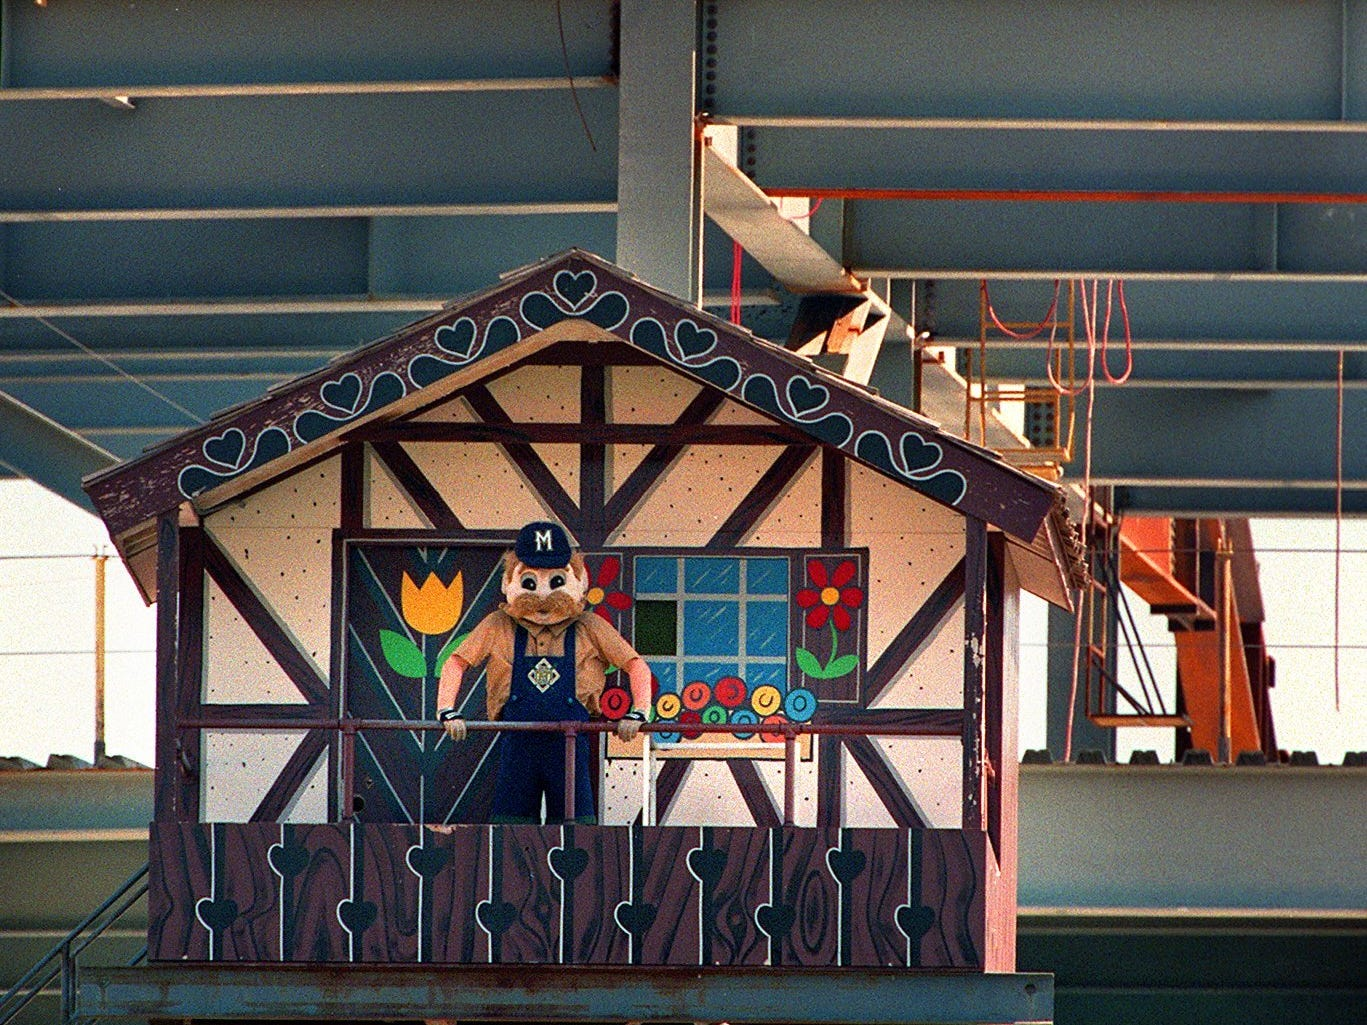 Bernie Brewer and a construction worker watch from their vantage points as the Cincinnati Reds take on the Brewers as seen from County Stadium.